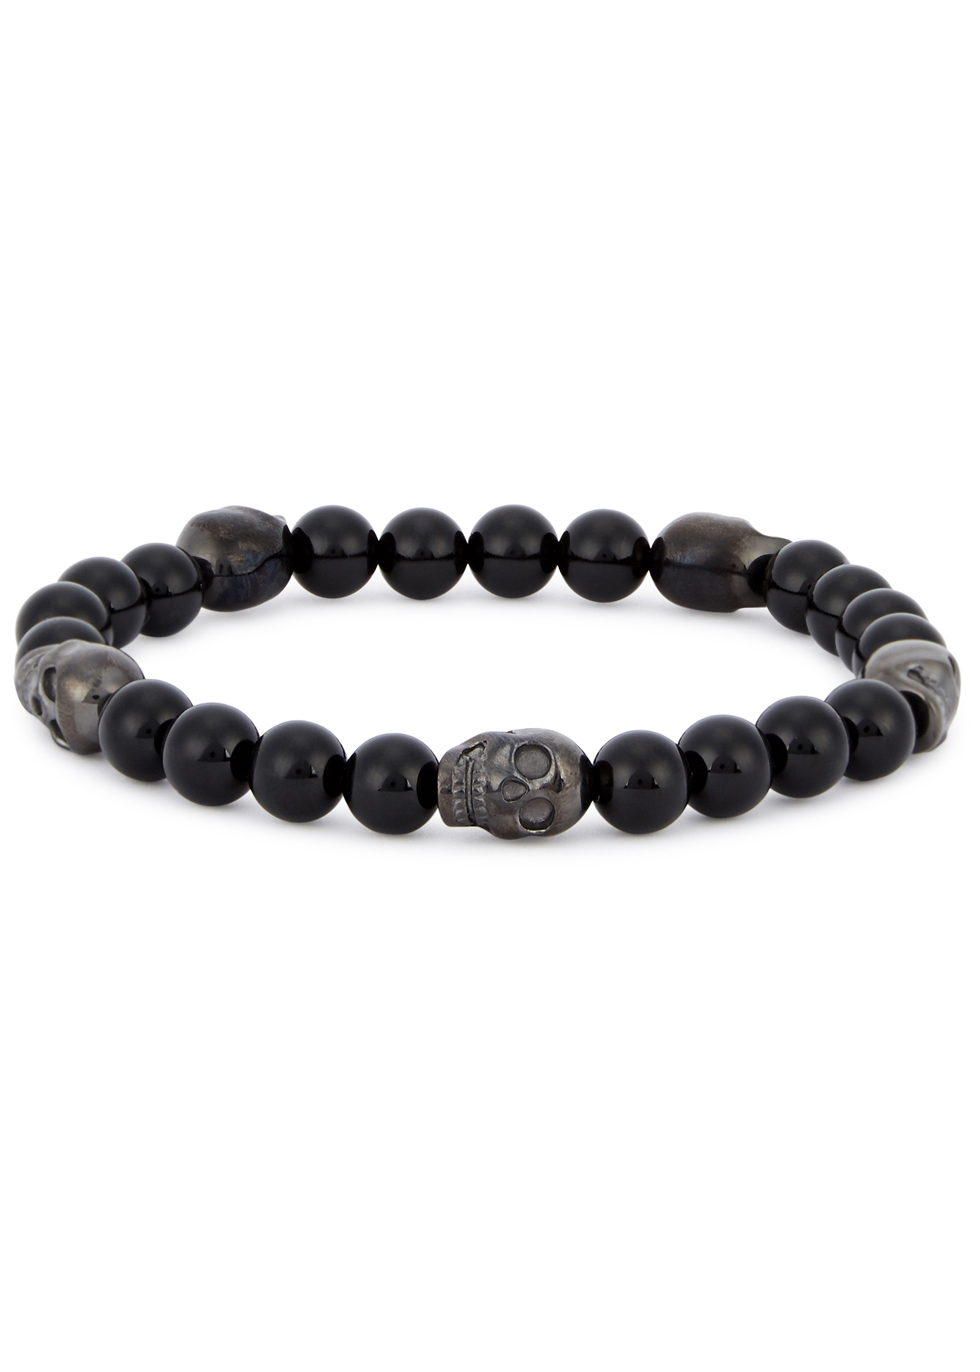 SIMON CARTER ONYX BEADED SKULL BRACELET